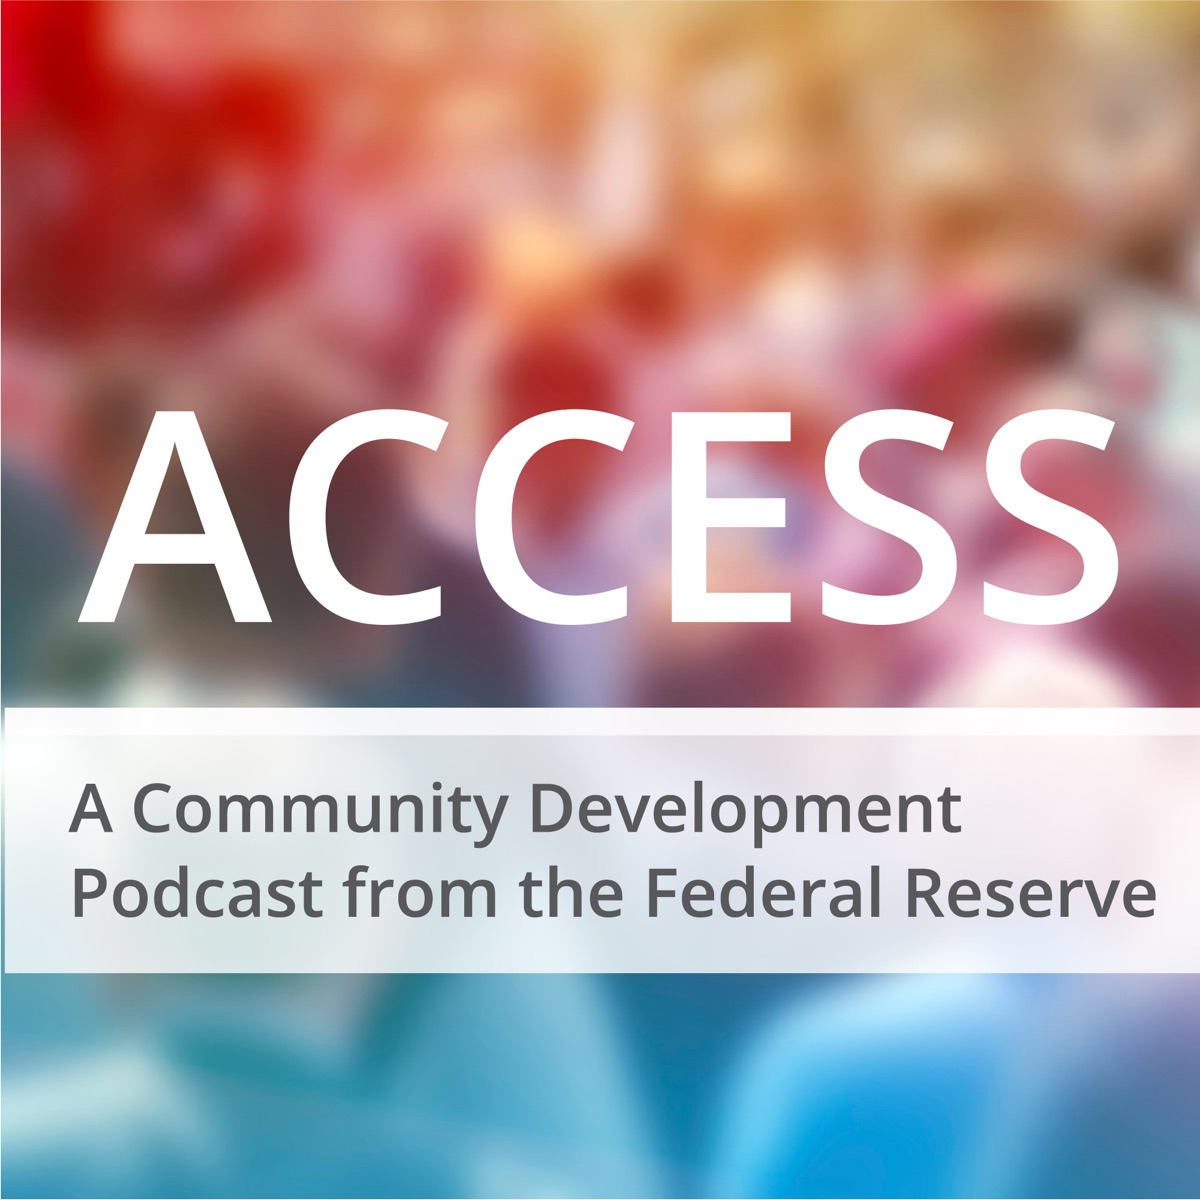 Ep. 2.2: Access to Local Food Systems as a Rural Economic Driver